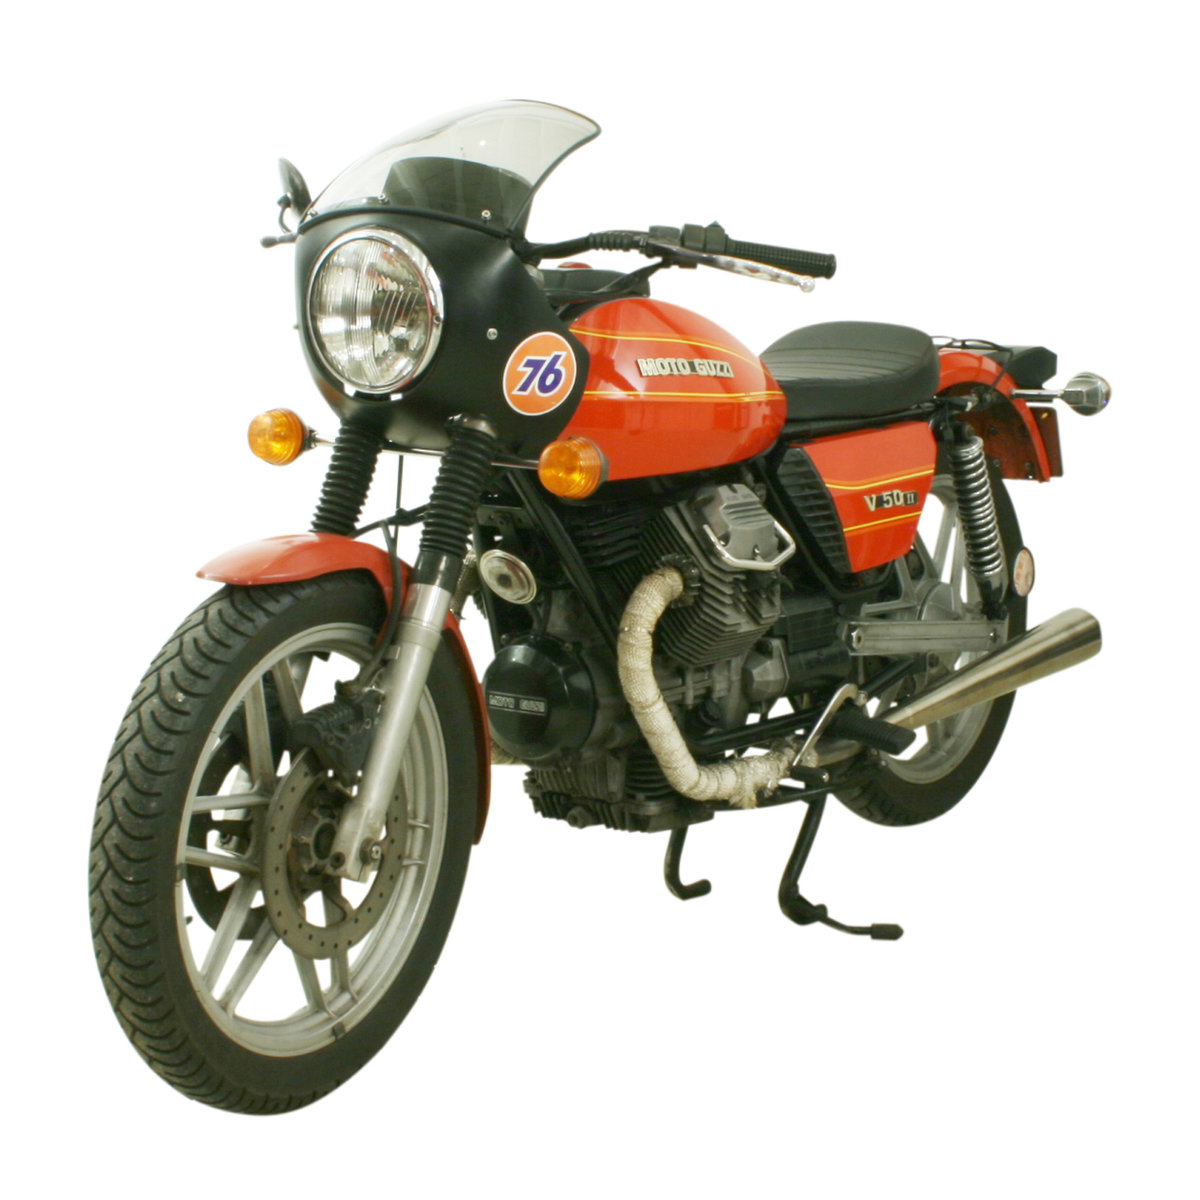 1981 Moto Guzzi V50 II 500cc Italian Motorcycle For Sale (picture 1 of 6)